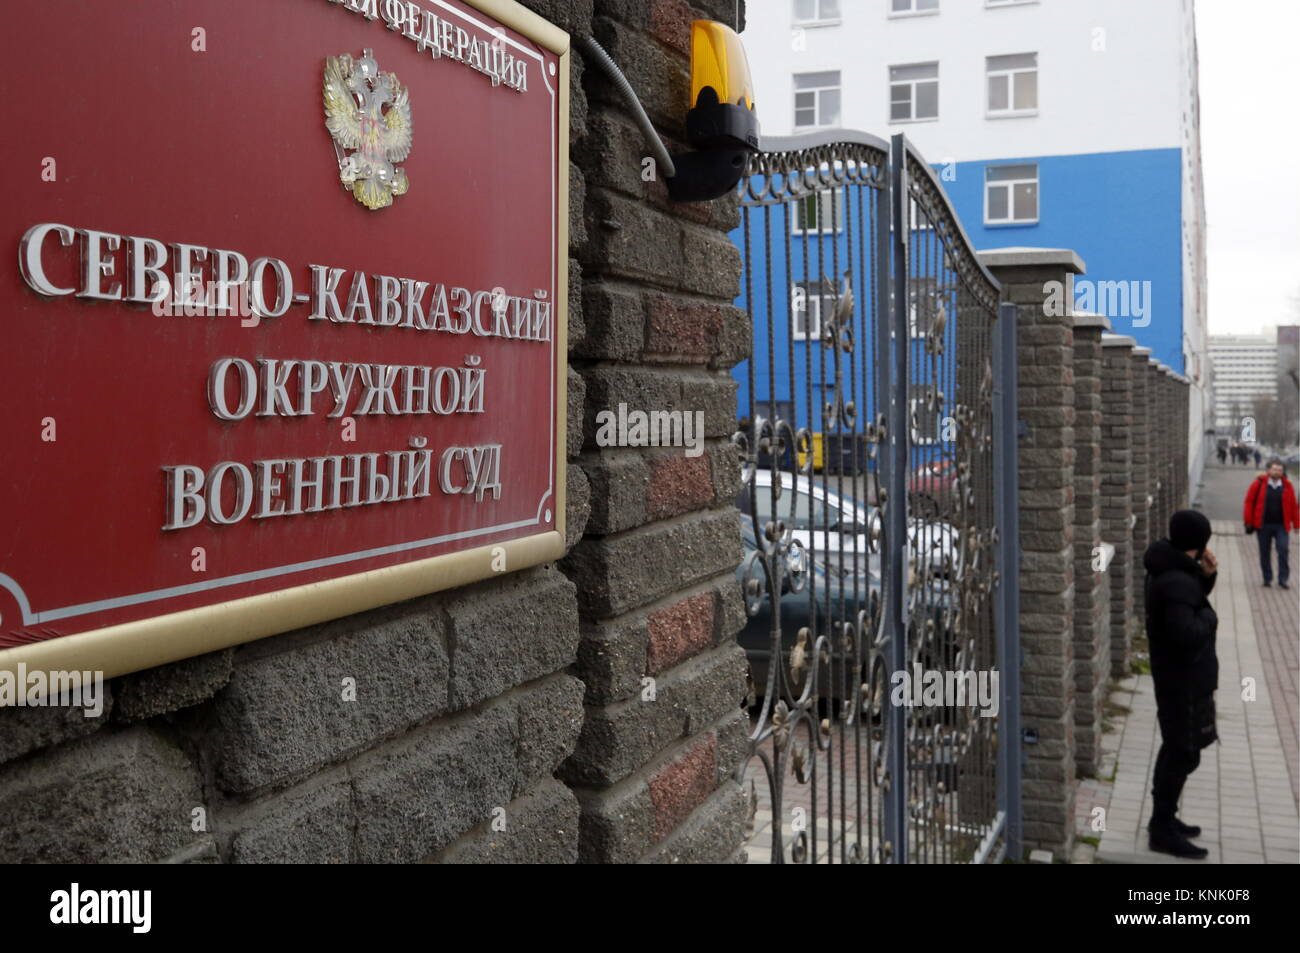 Rostov On Don, Russia. 13th Dec, 2017. A sign outside the building of Rostov-on-Don's North Caucasus Military - Stock Image